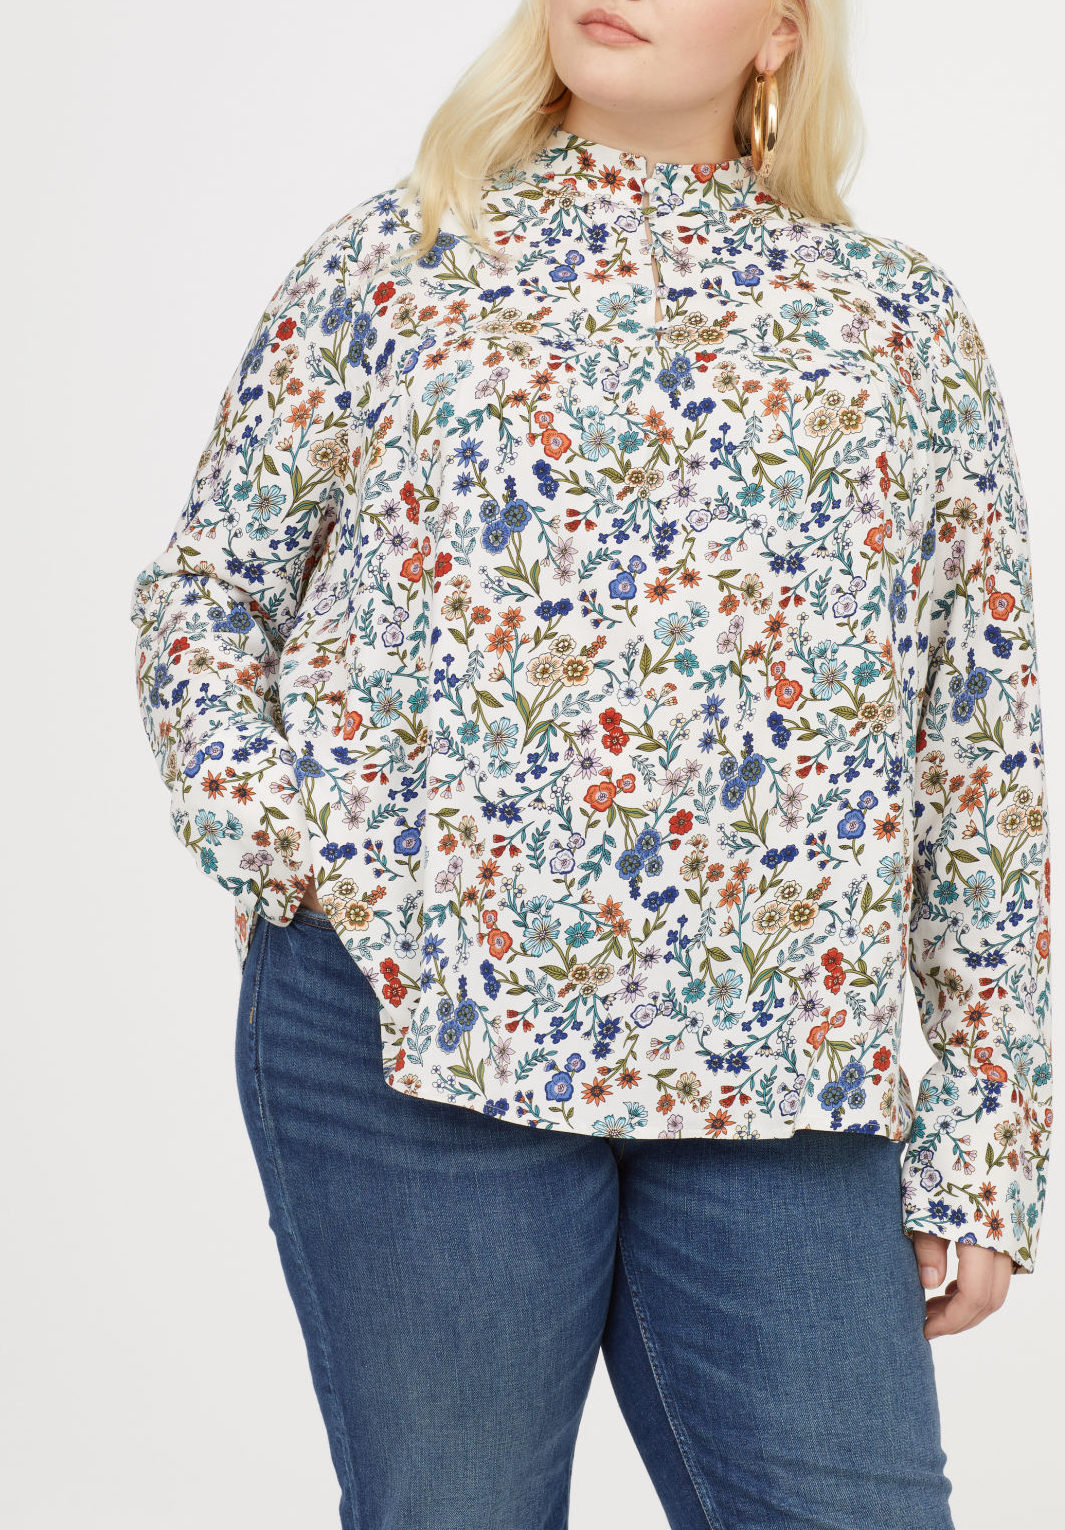 h&m extended floral shirt